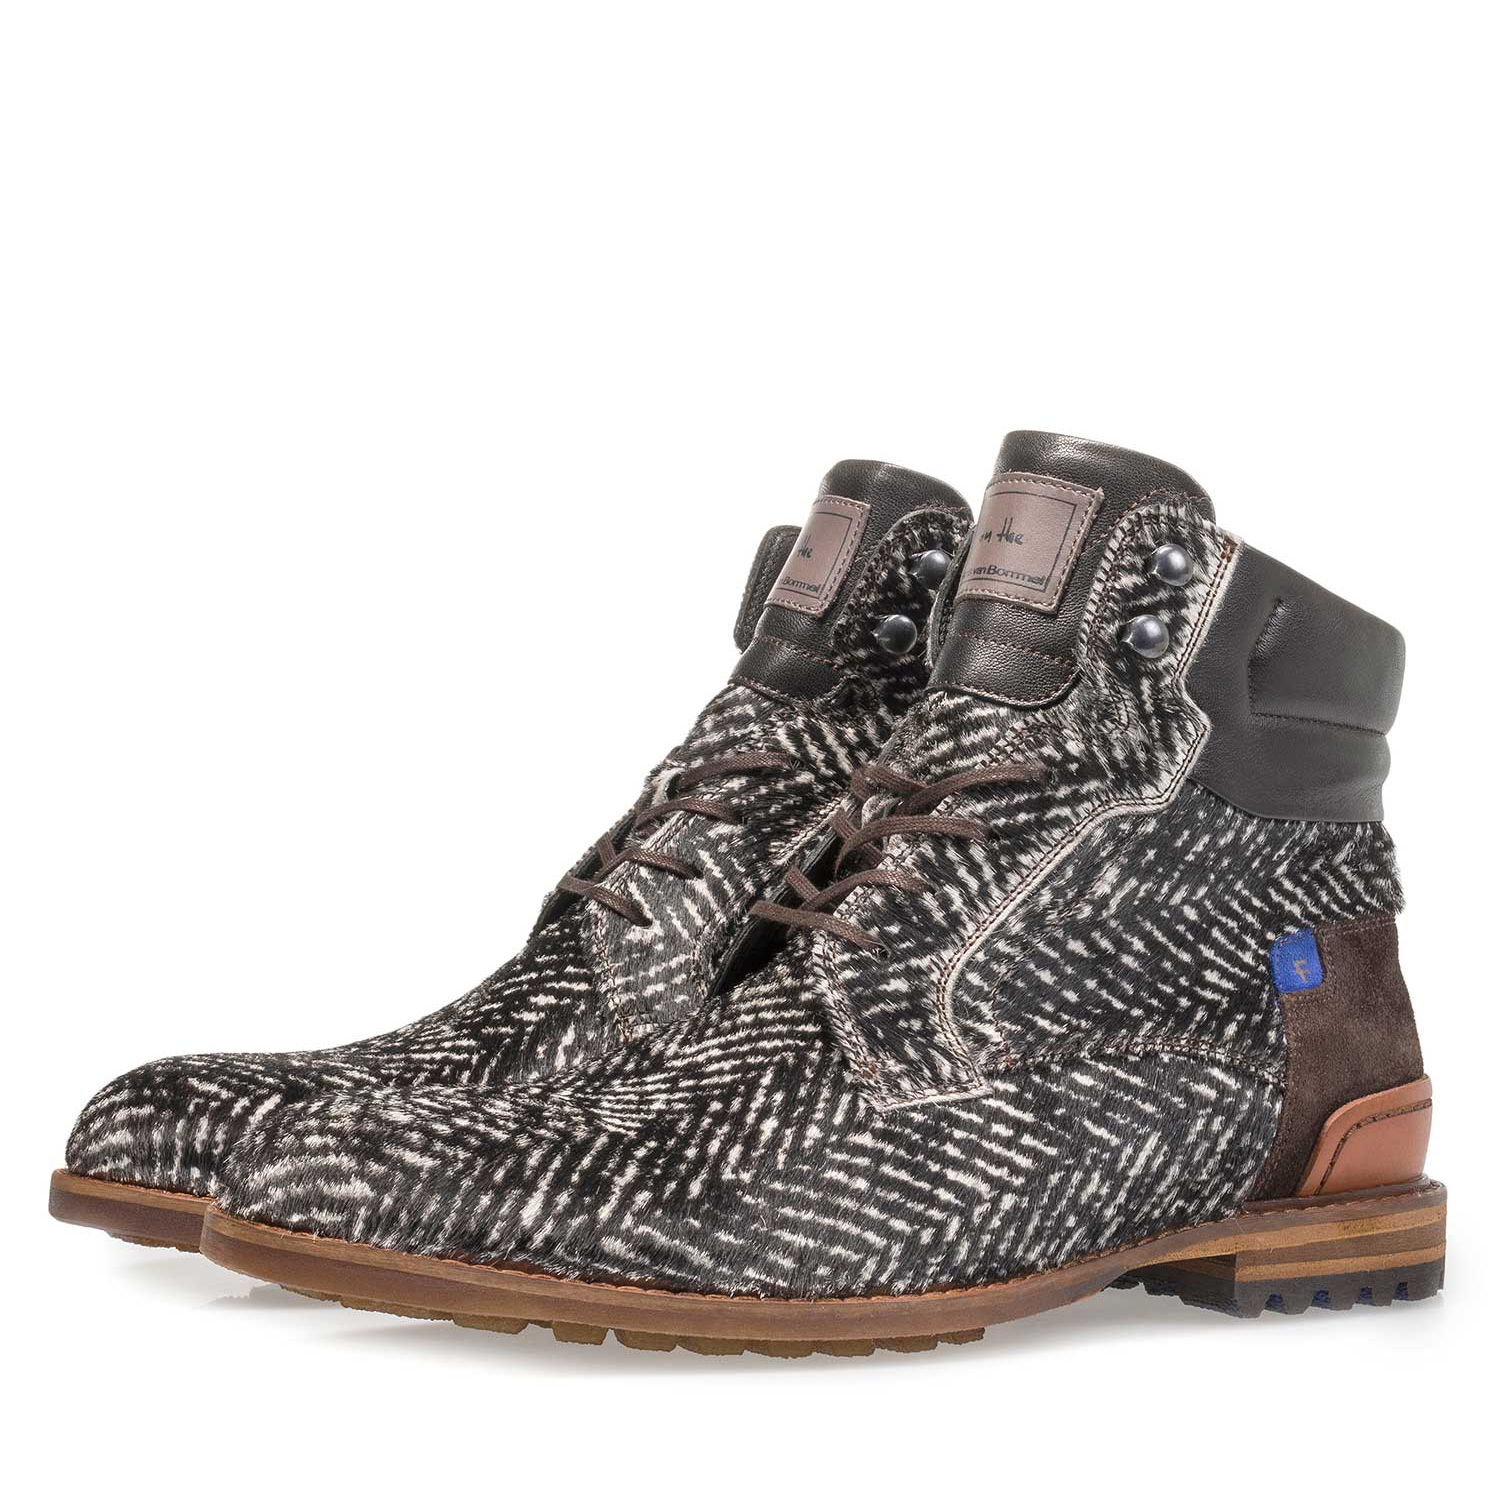 10641/02 - Premium off-white printed pony hair lace boot